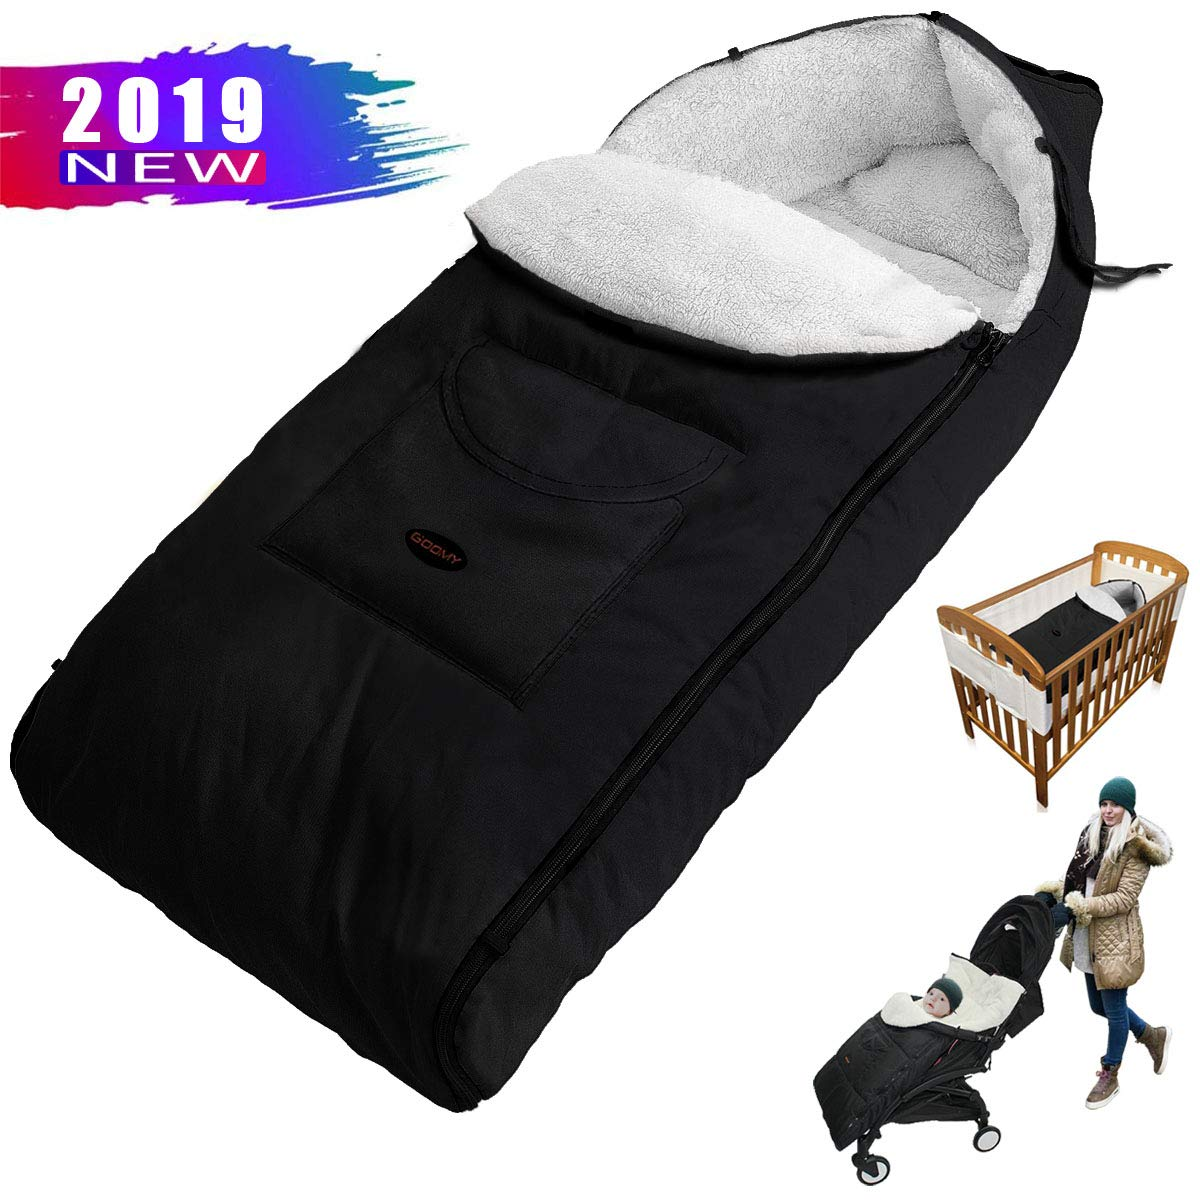 Black Winter Baby Footmuff Universal Stroller Sleeping Bag Pushchair Plush Cushions Seat Liner Waterproof Windproof Comfortable Toes Cover (Babies Over 12 Months)